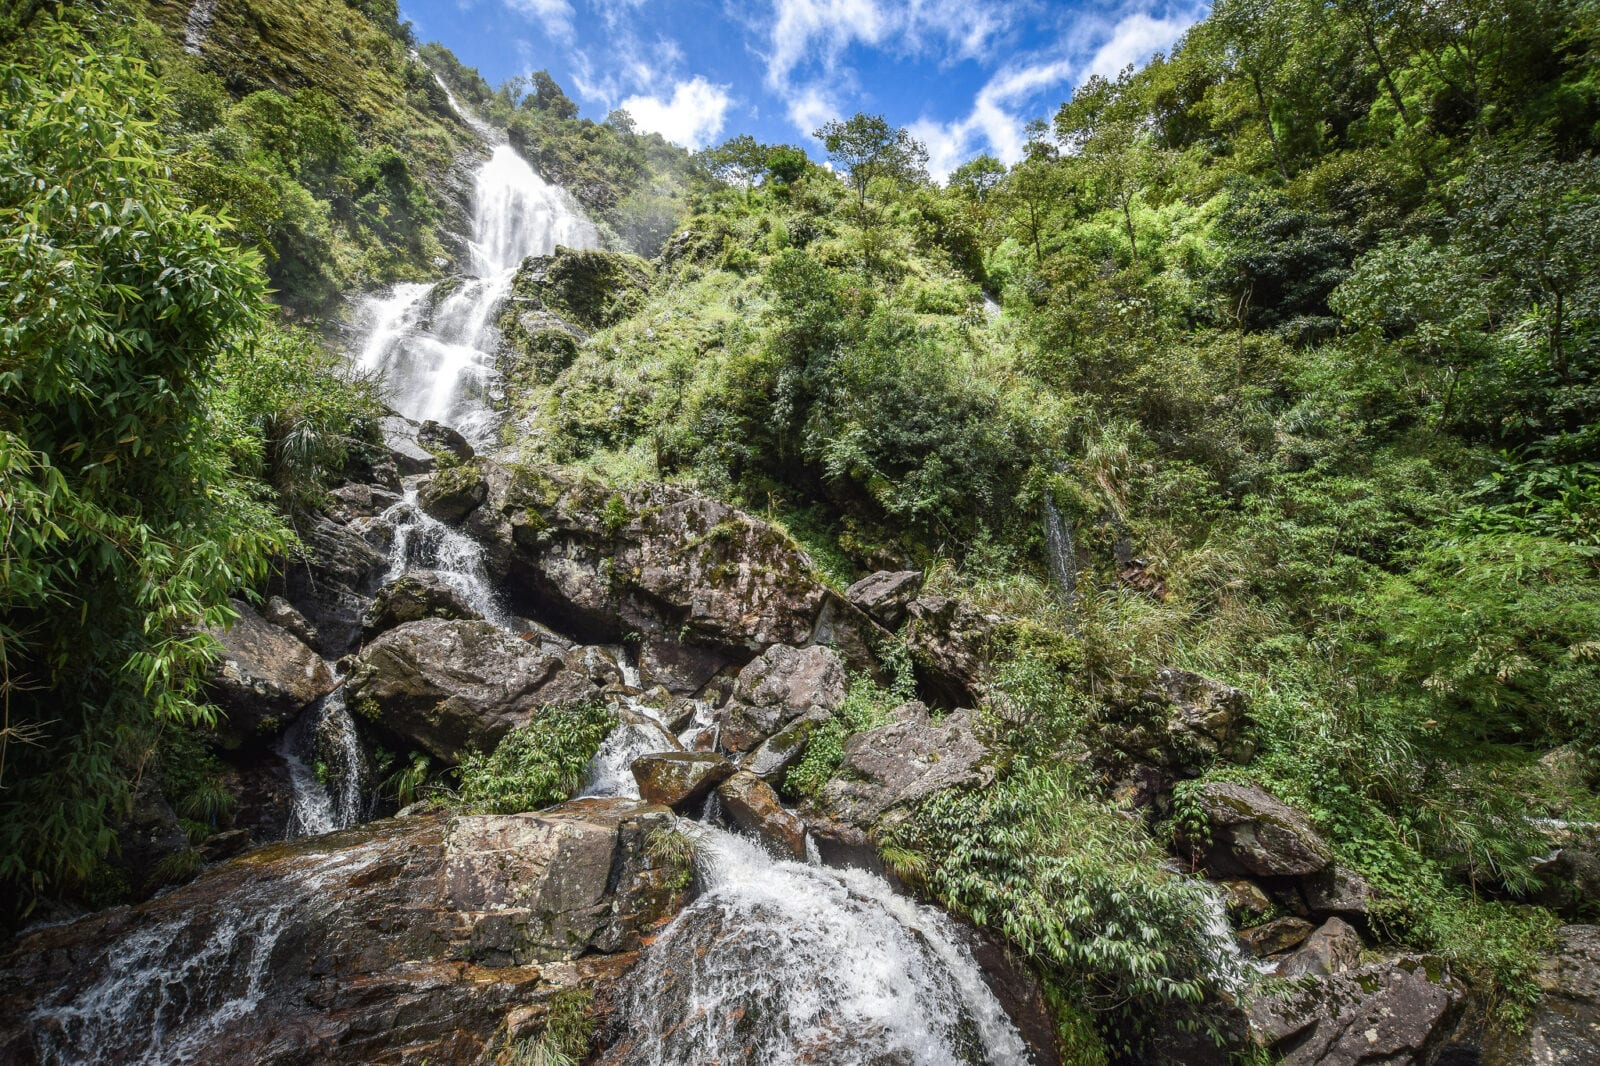 Image of Thac Bac waterfall in Ba Be National Park in Vietnam